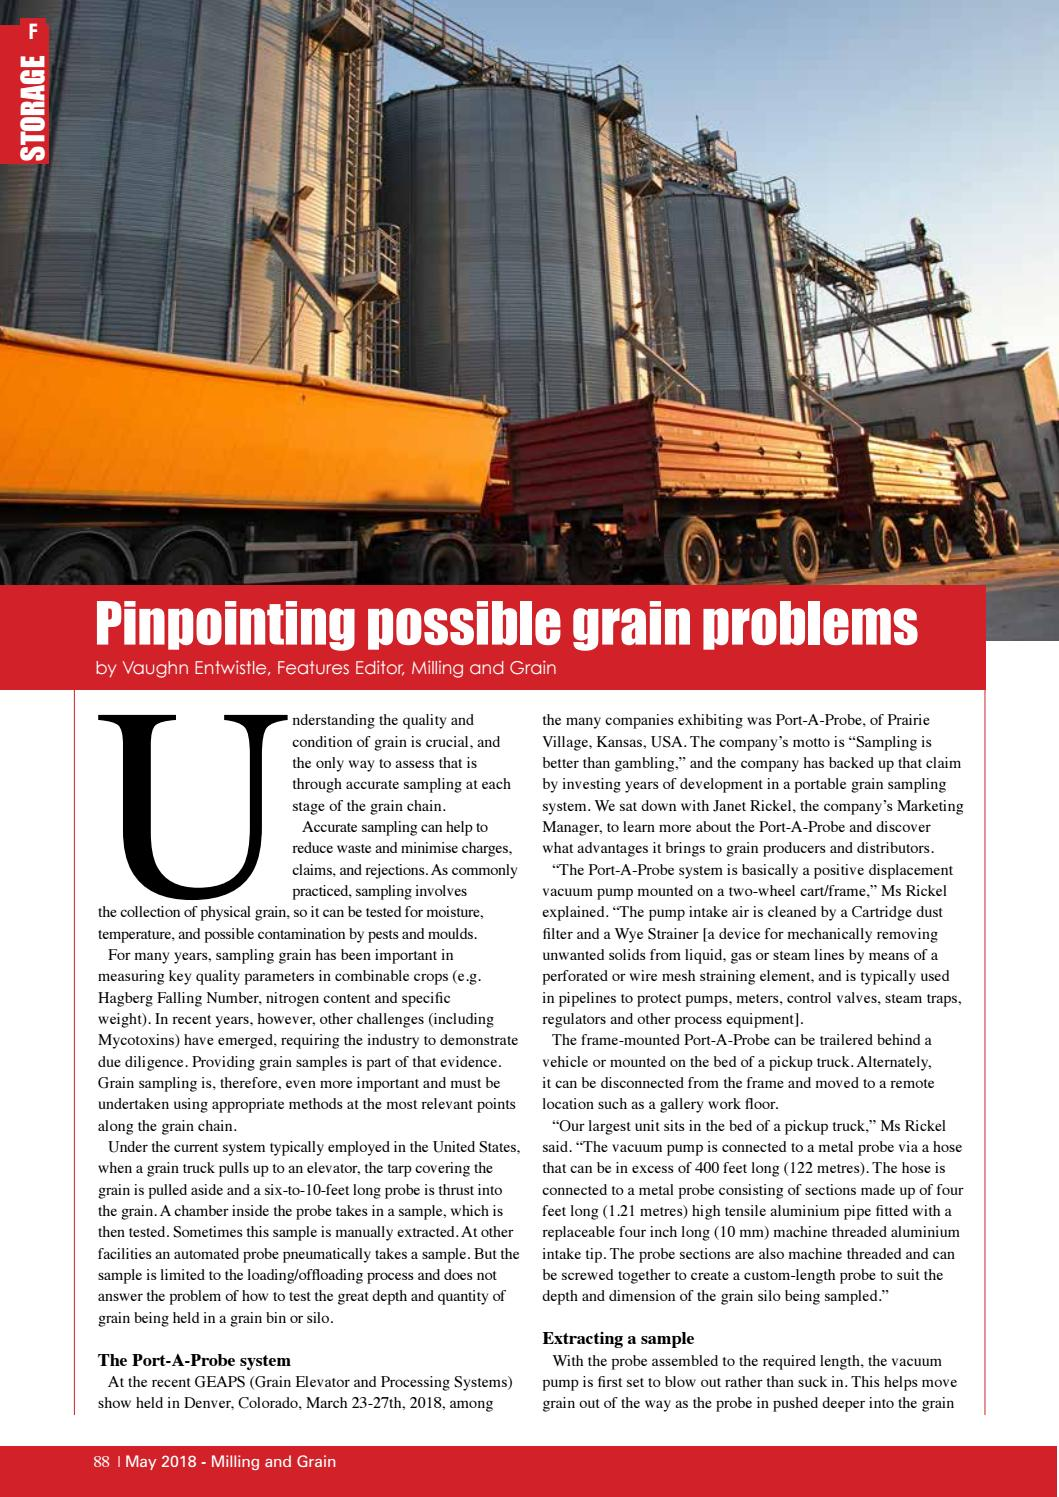 MAY 2018 - Milling and Grain magazine by Perendale